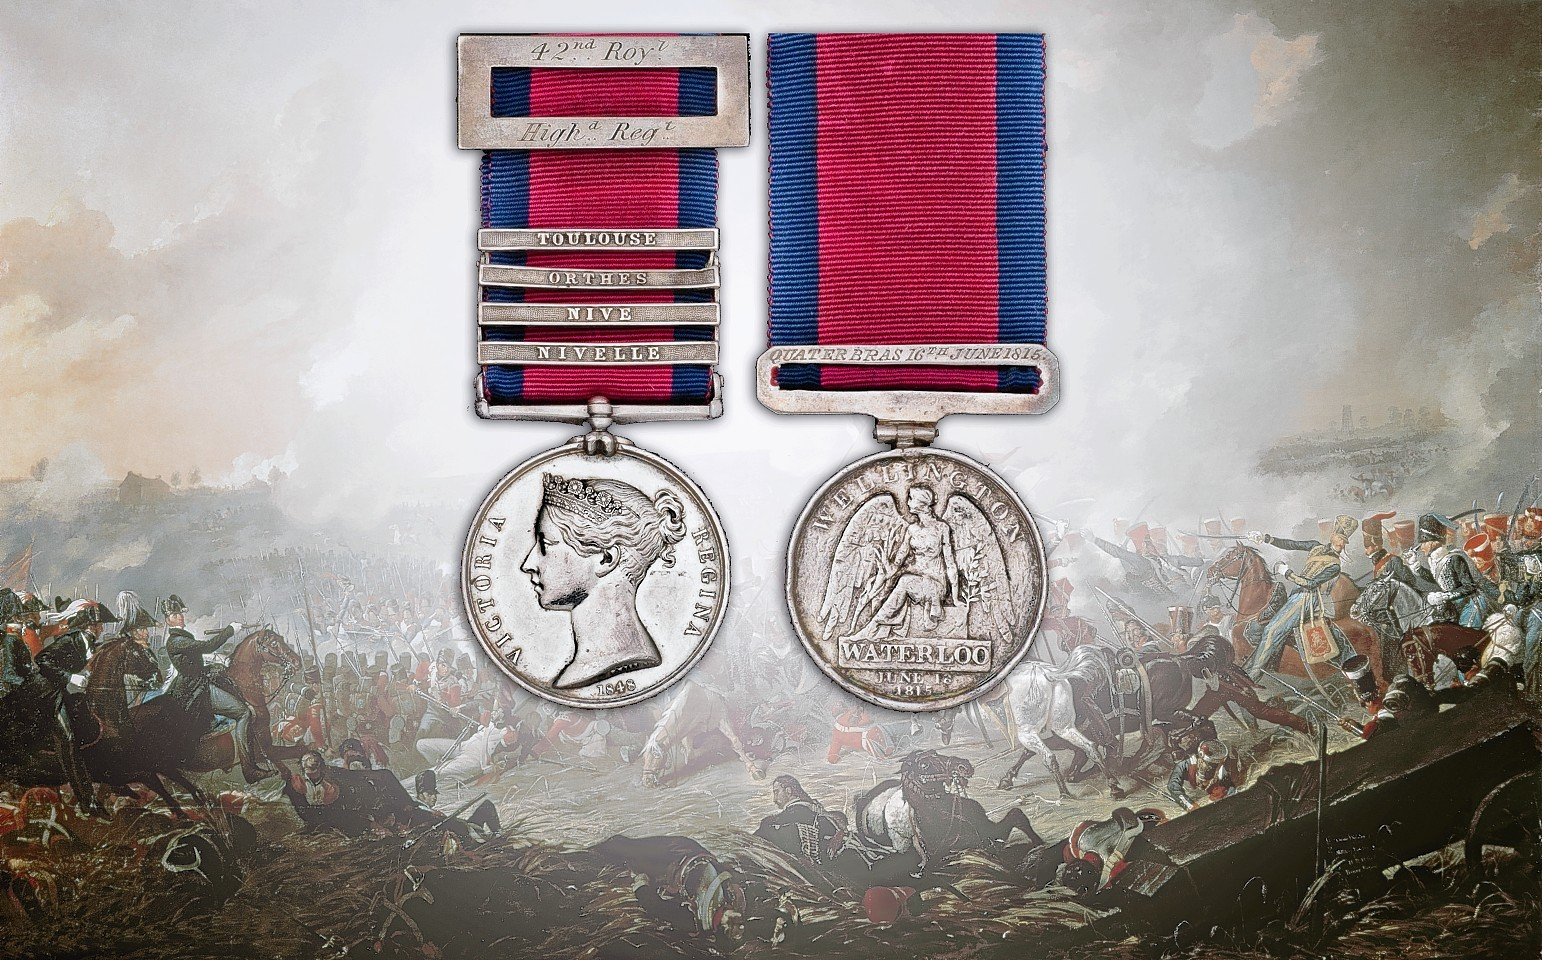 The medals were sold for £4,800 at auction